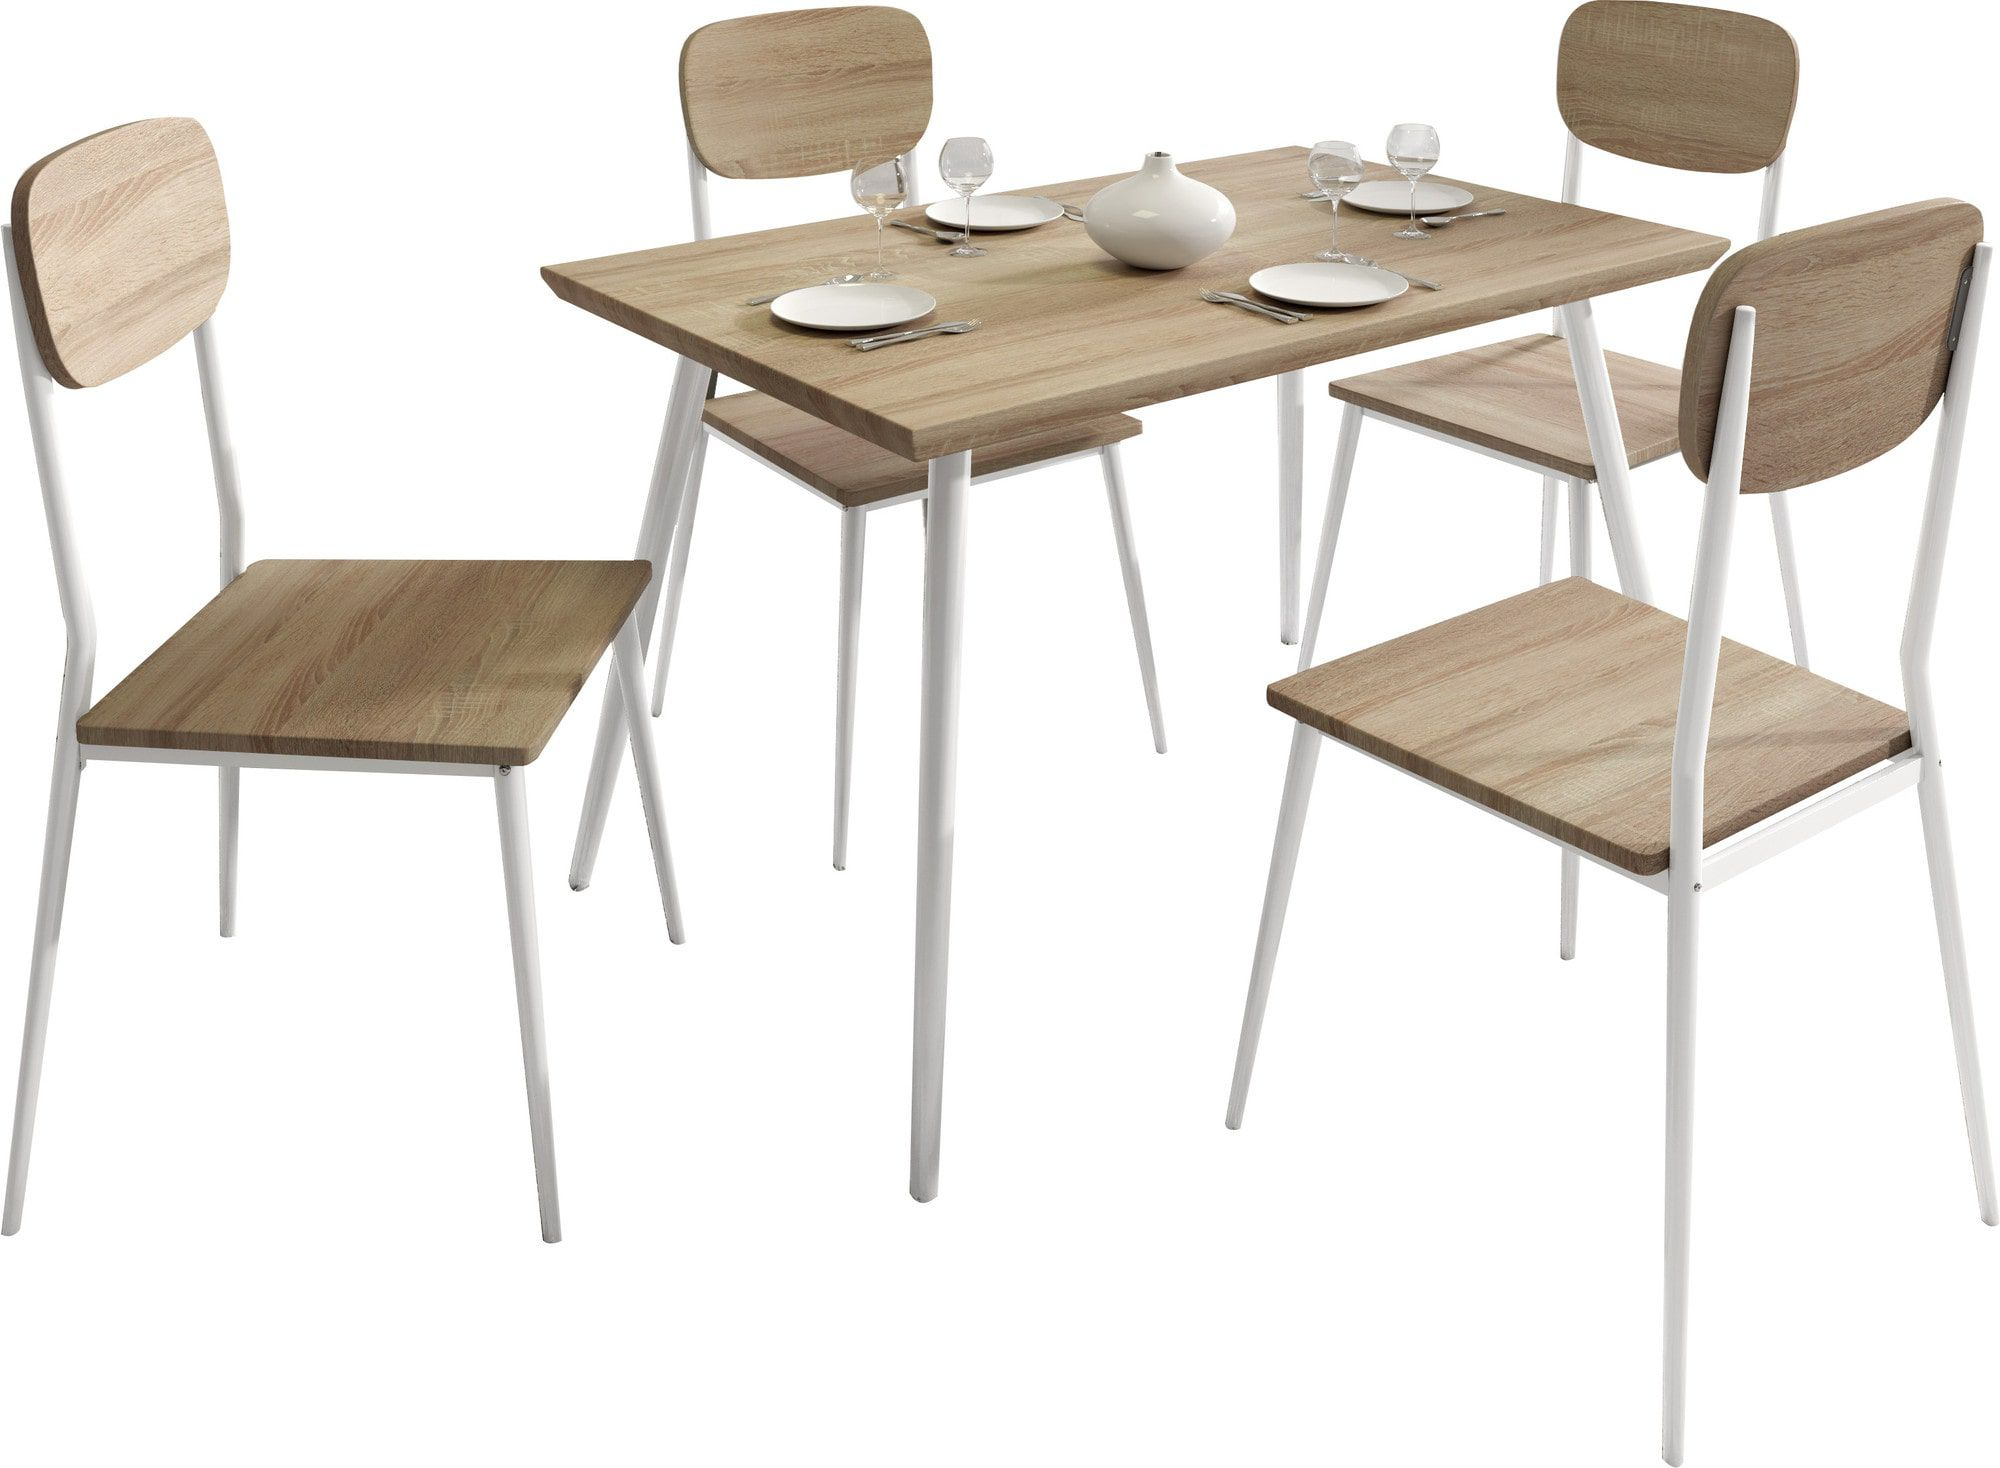 Comment assortir l ensemble table et chaise de sa salle for Ensemble table et chaise salle a manger